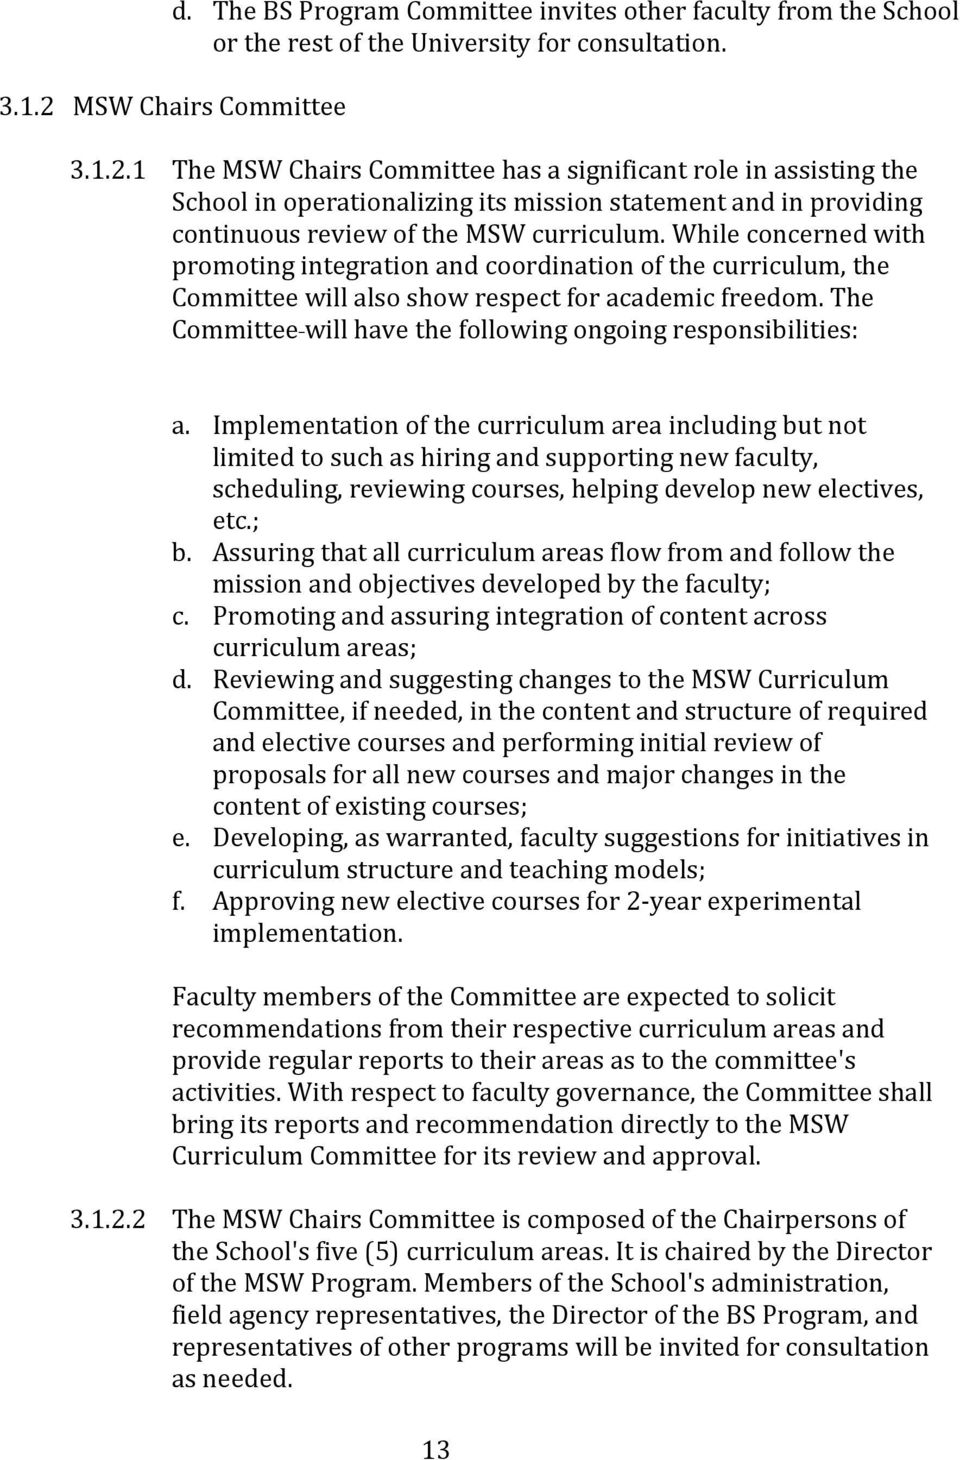 While concerned with promoting integration and coordination of the curriculum, the Committee will also show respect for academic freedom.